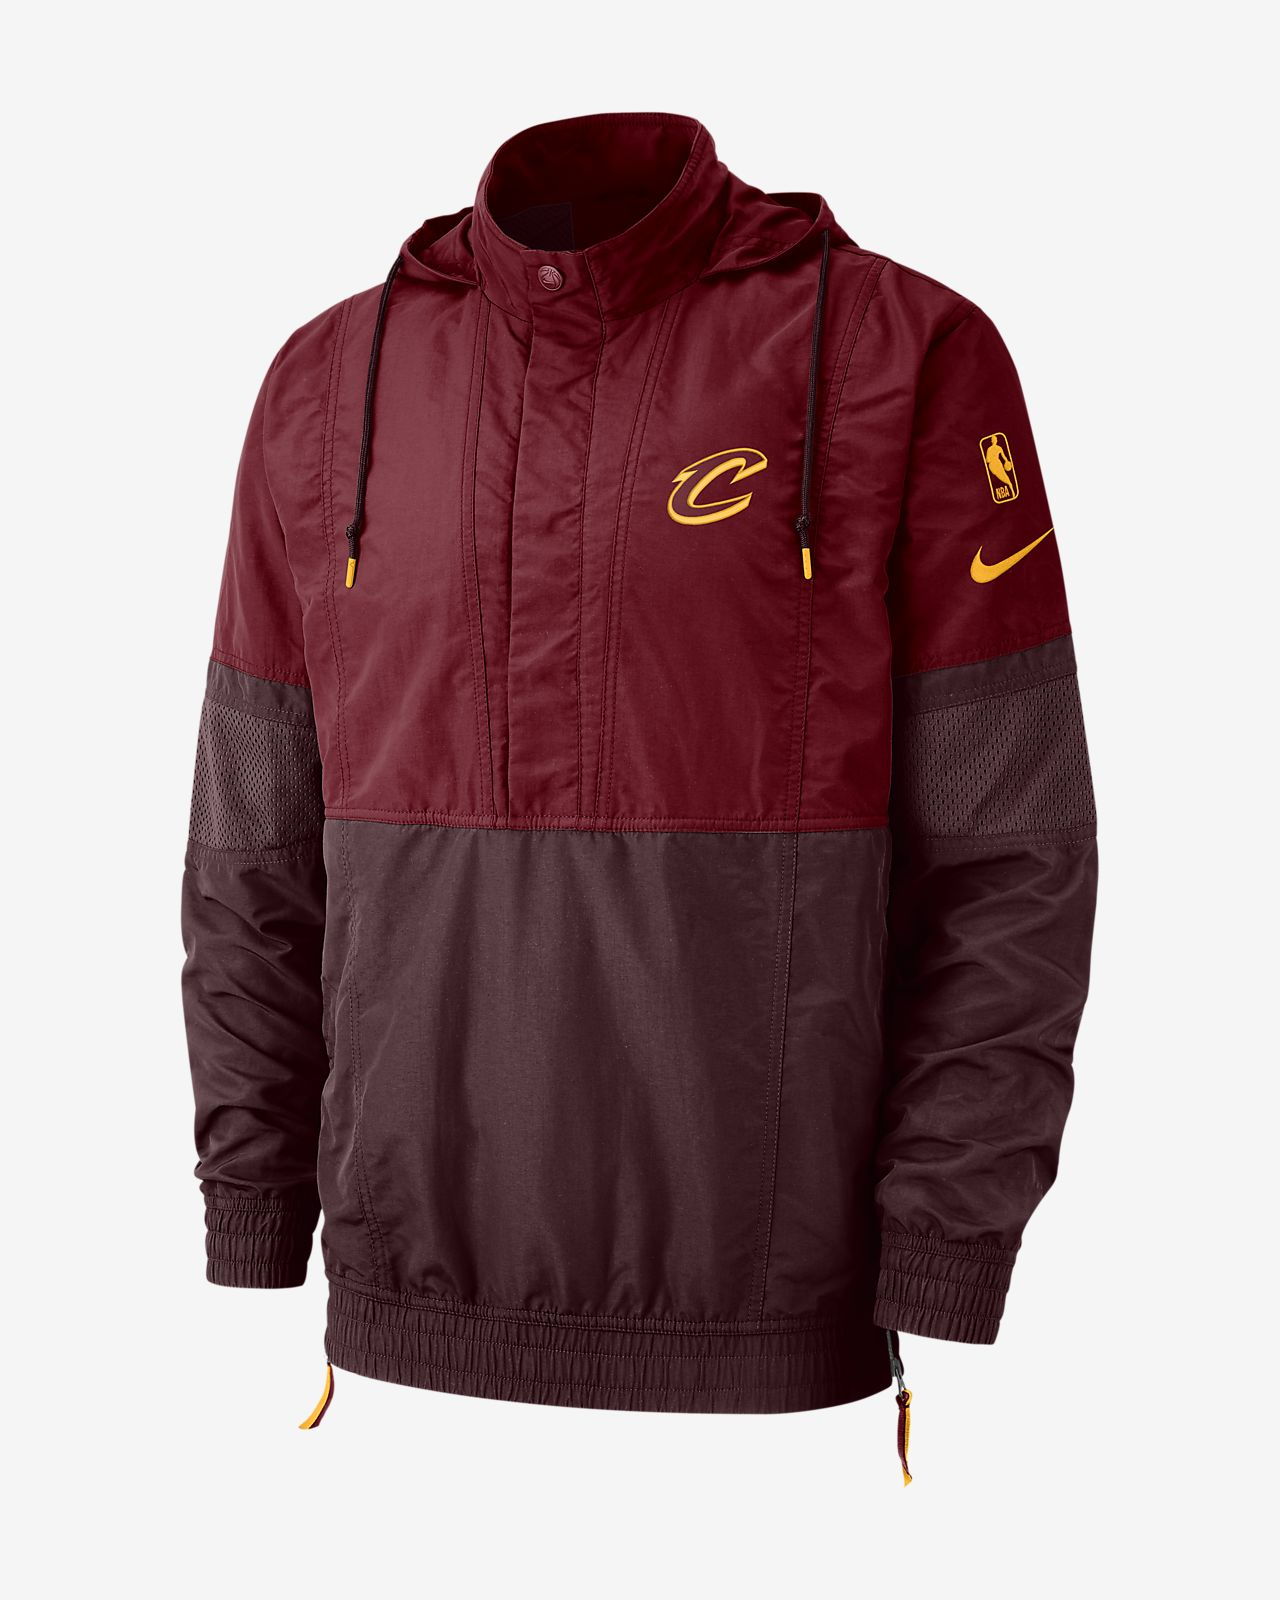 Cleveland Cavaliers Nike Courtside Men's Hooded NBA Jacket